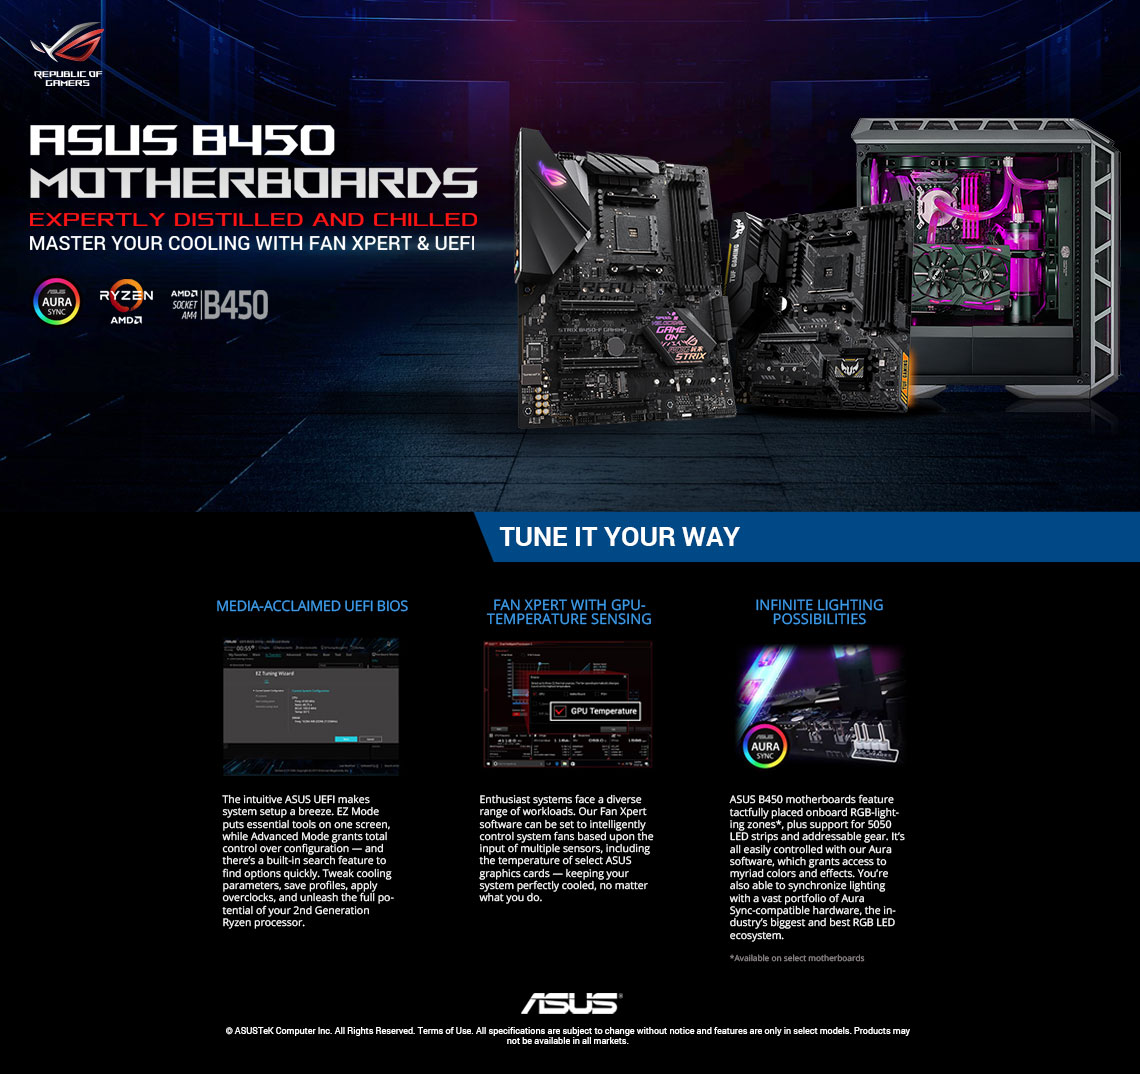 Custom Gaming PCs featuring the all-new Ryzen 7 Processors for Incredible Multi-Core Performance